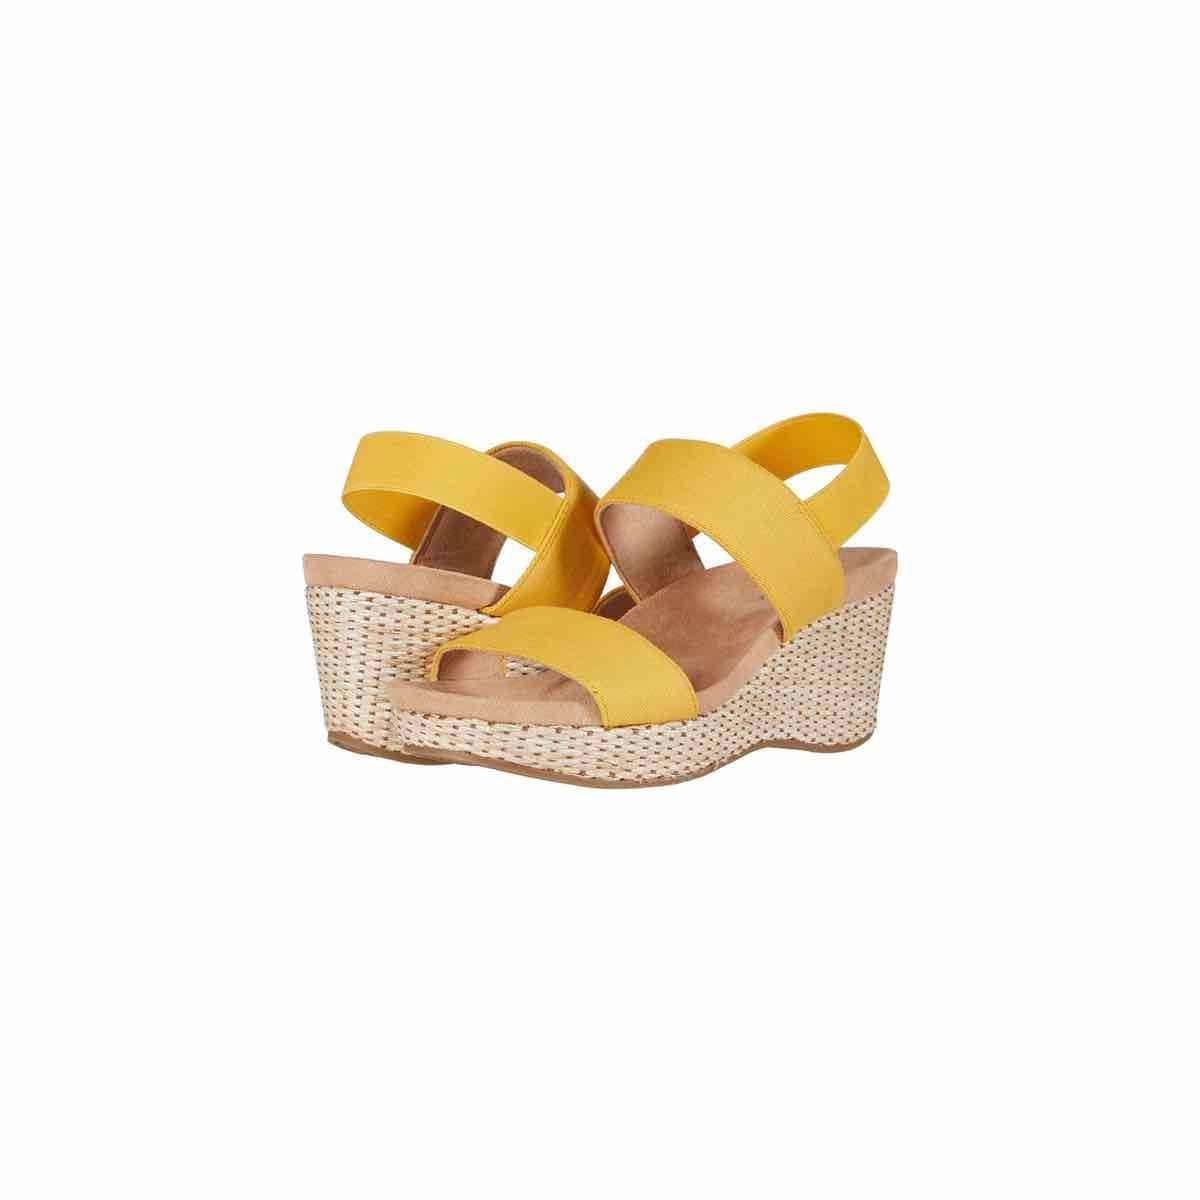 2020 PerhapsRio Comfortable Animal Print Wide Open Toe Platforms Sandals Casual Lightweight Buckle Ankle Strap Sandals with Velcro Beach Satin Fish Sandals